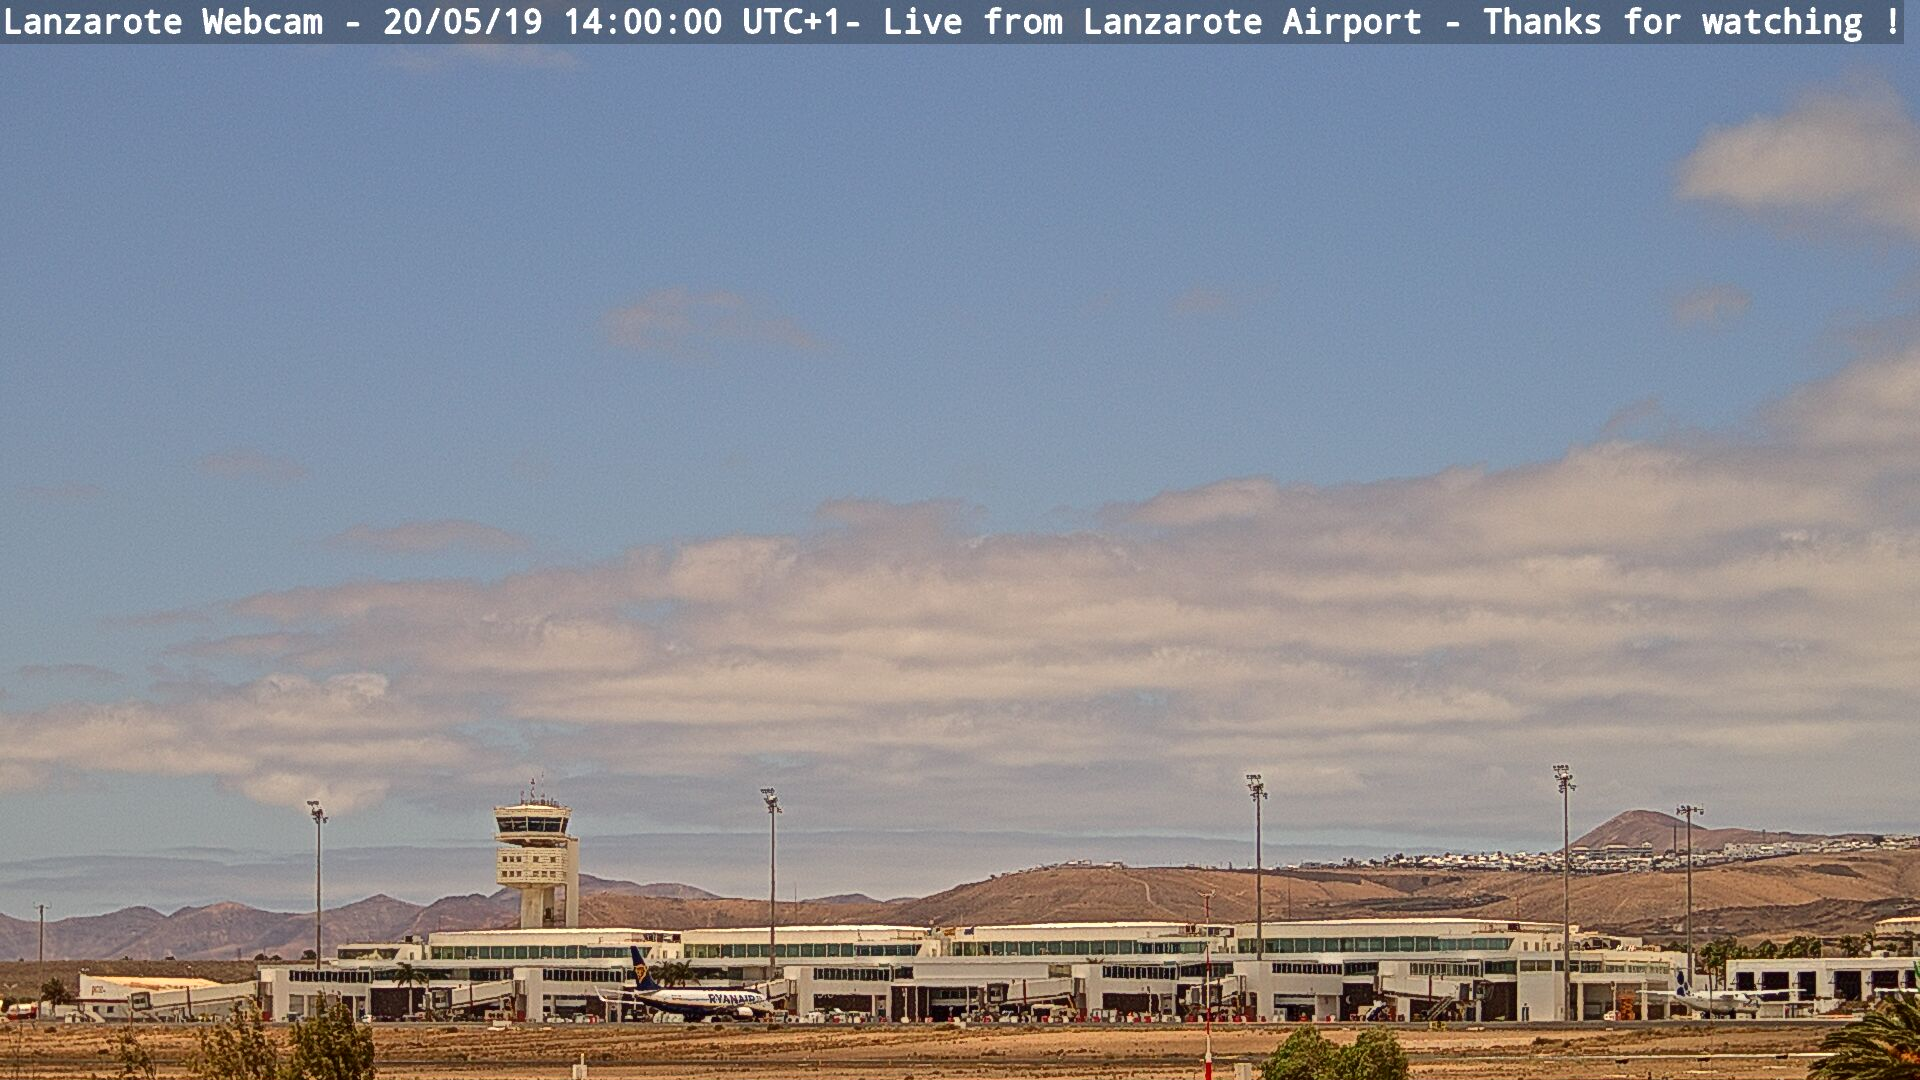 Snapshot from airport webcam